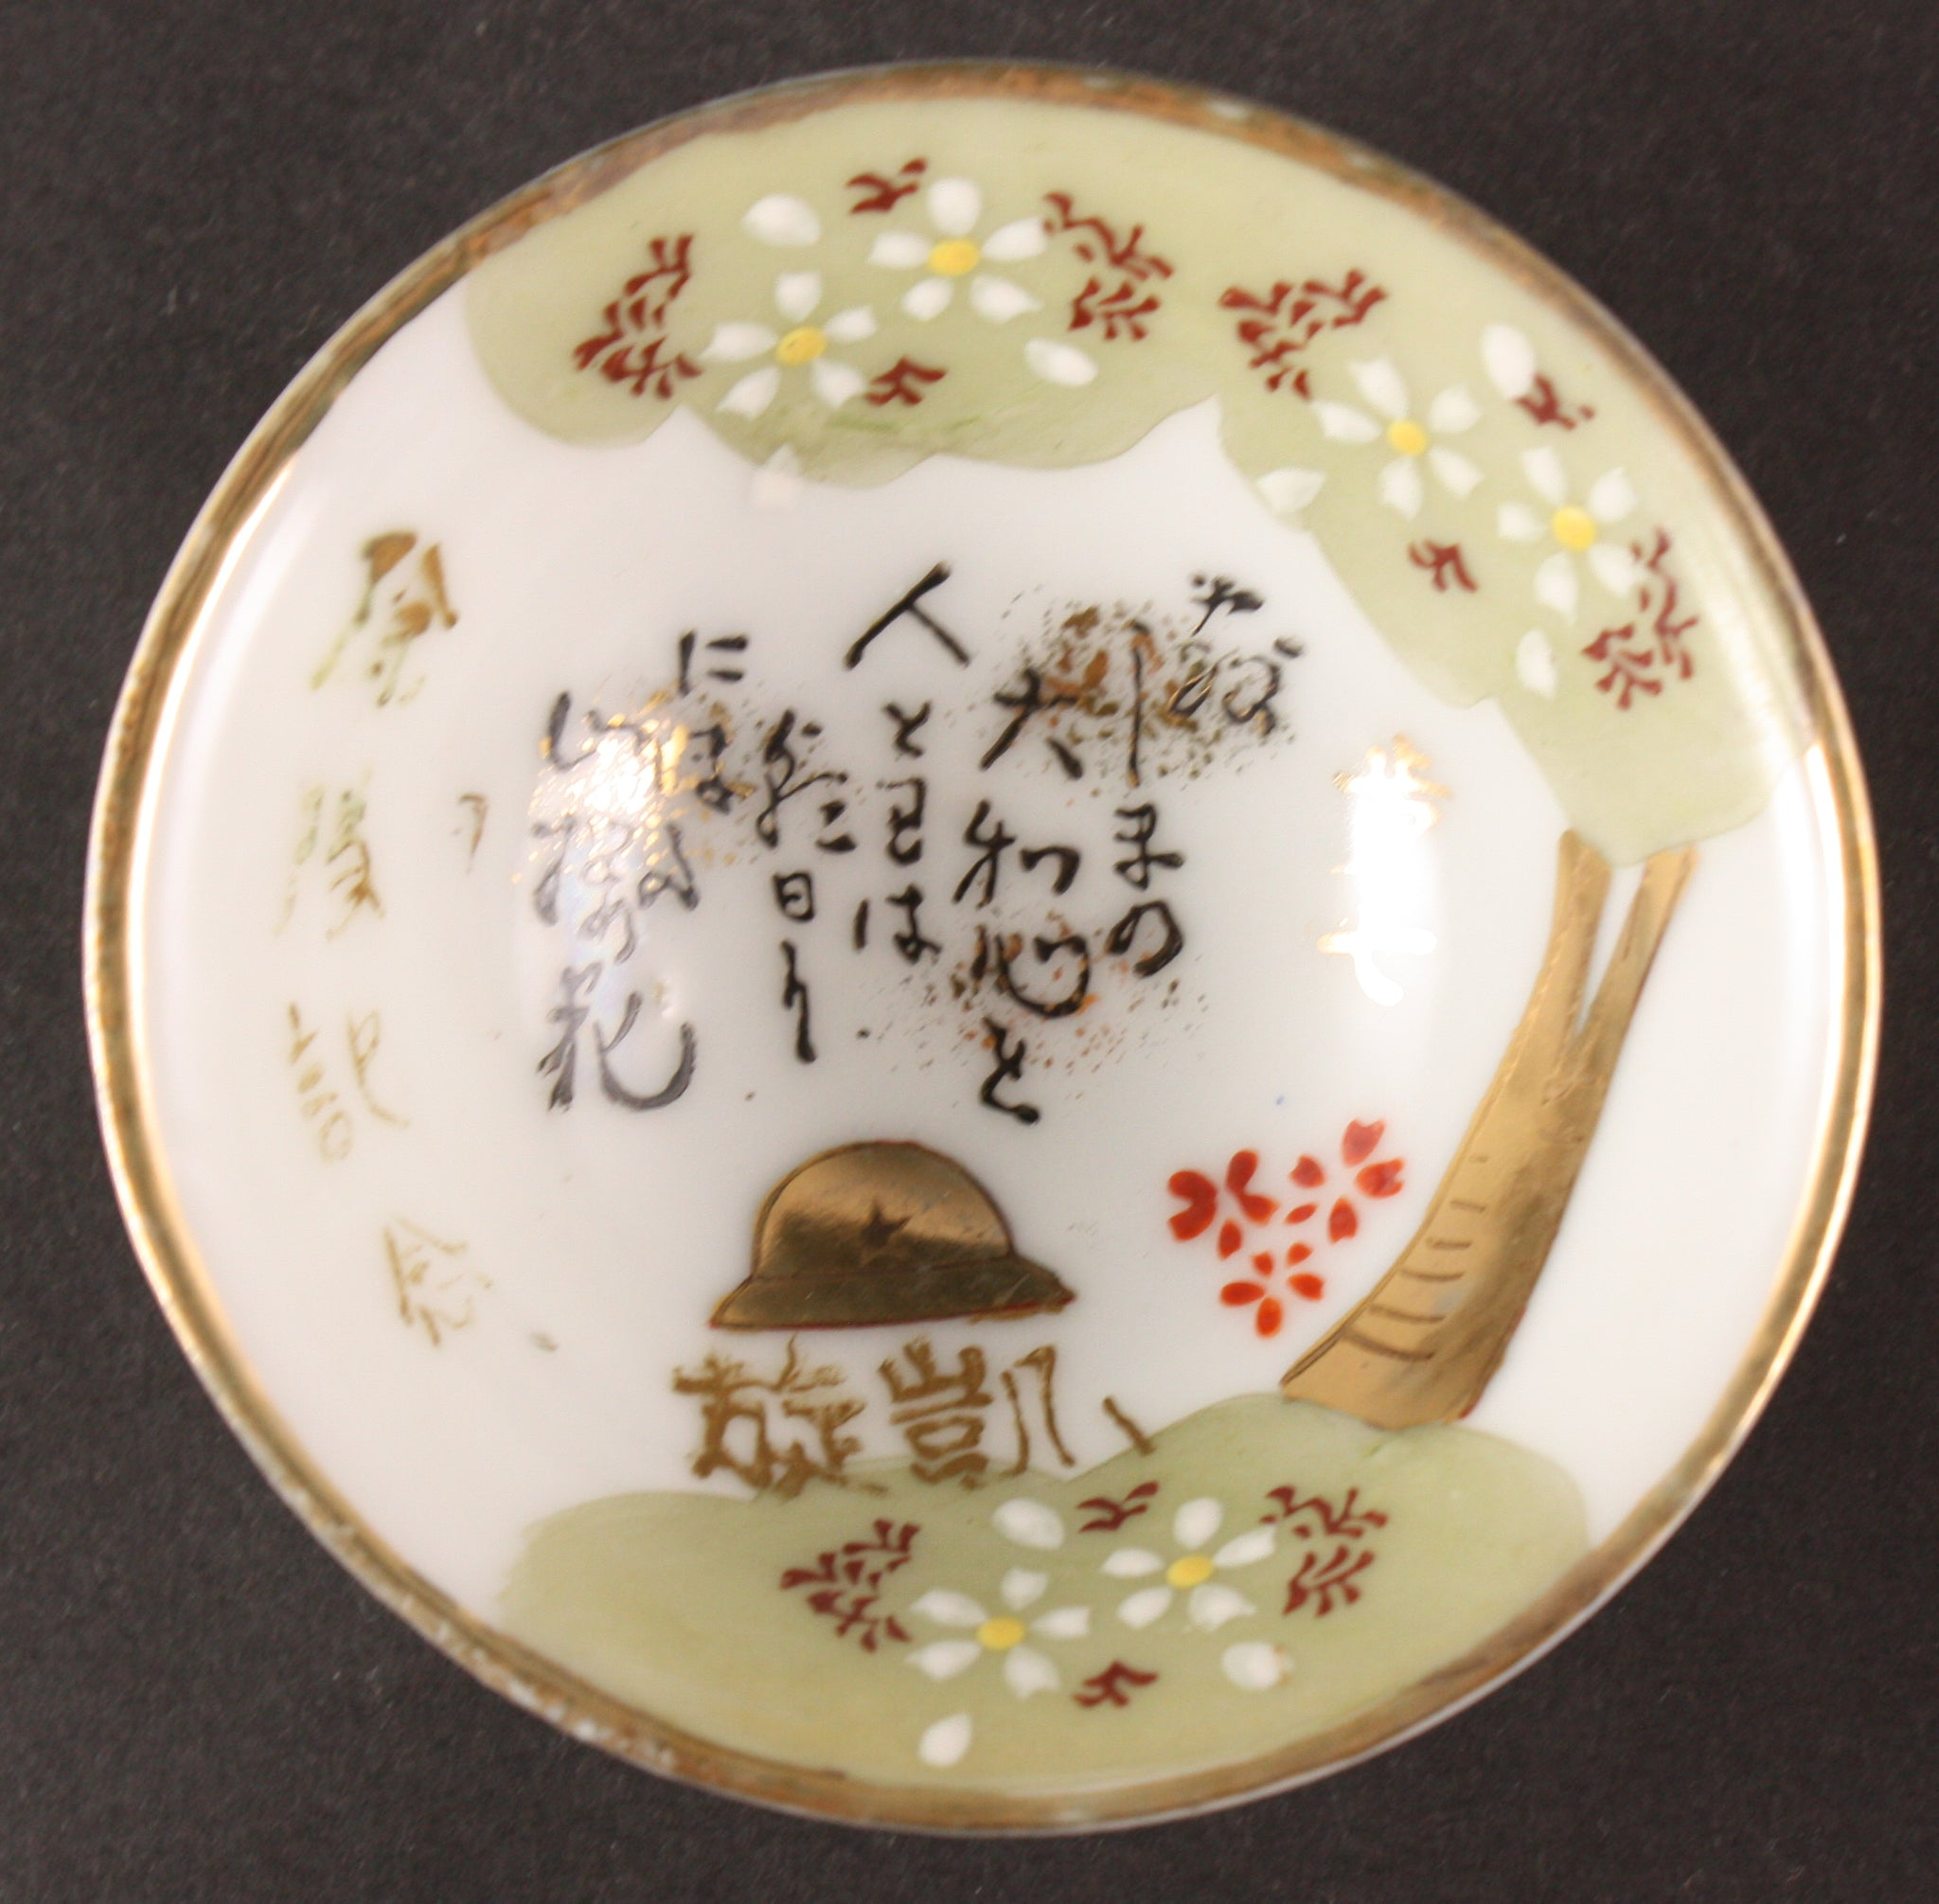 Antique Japanese Military Blossom Tree Poem Infantry Army Sake Cup